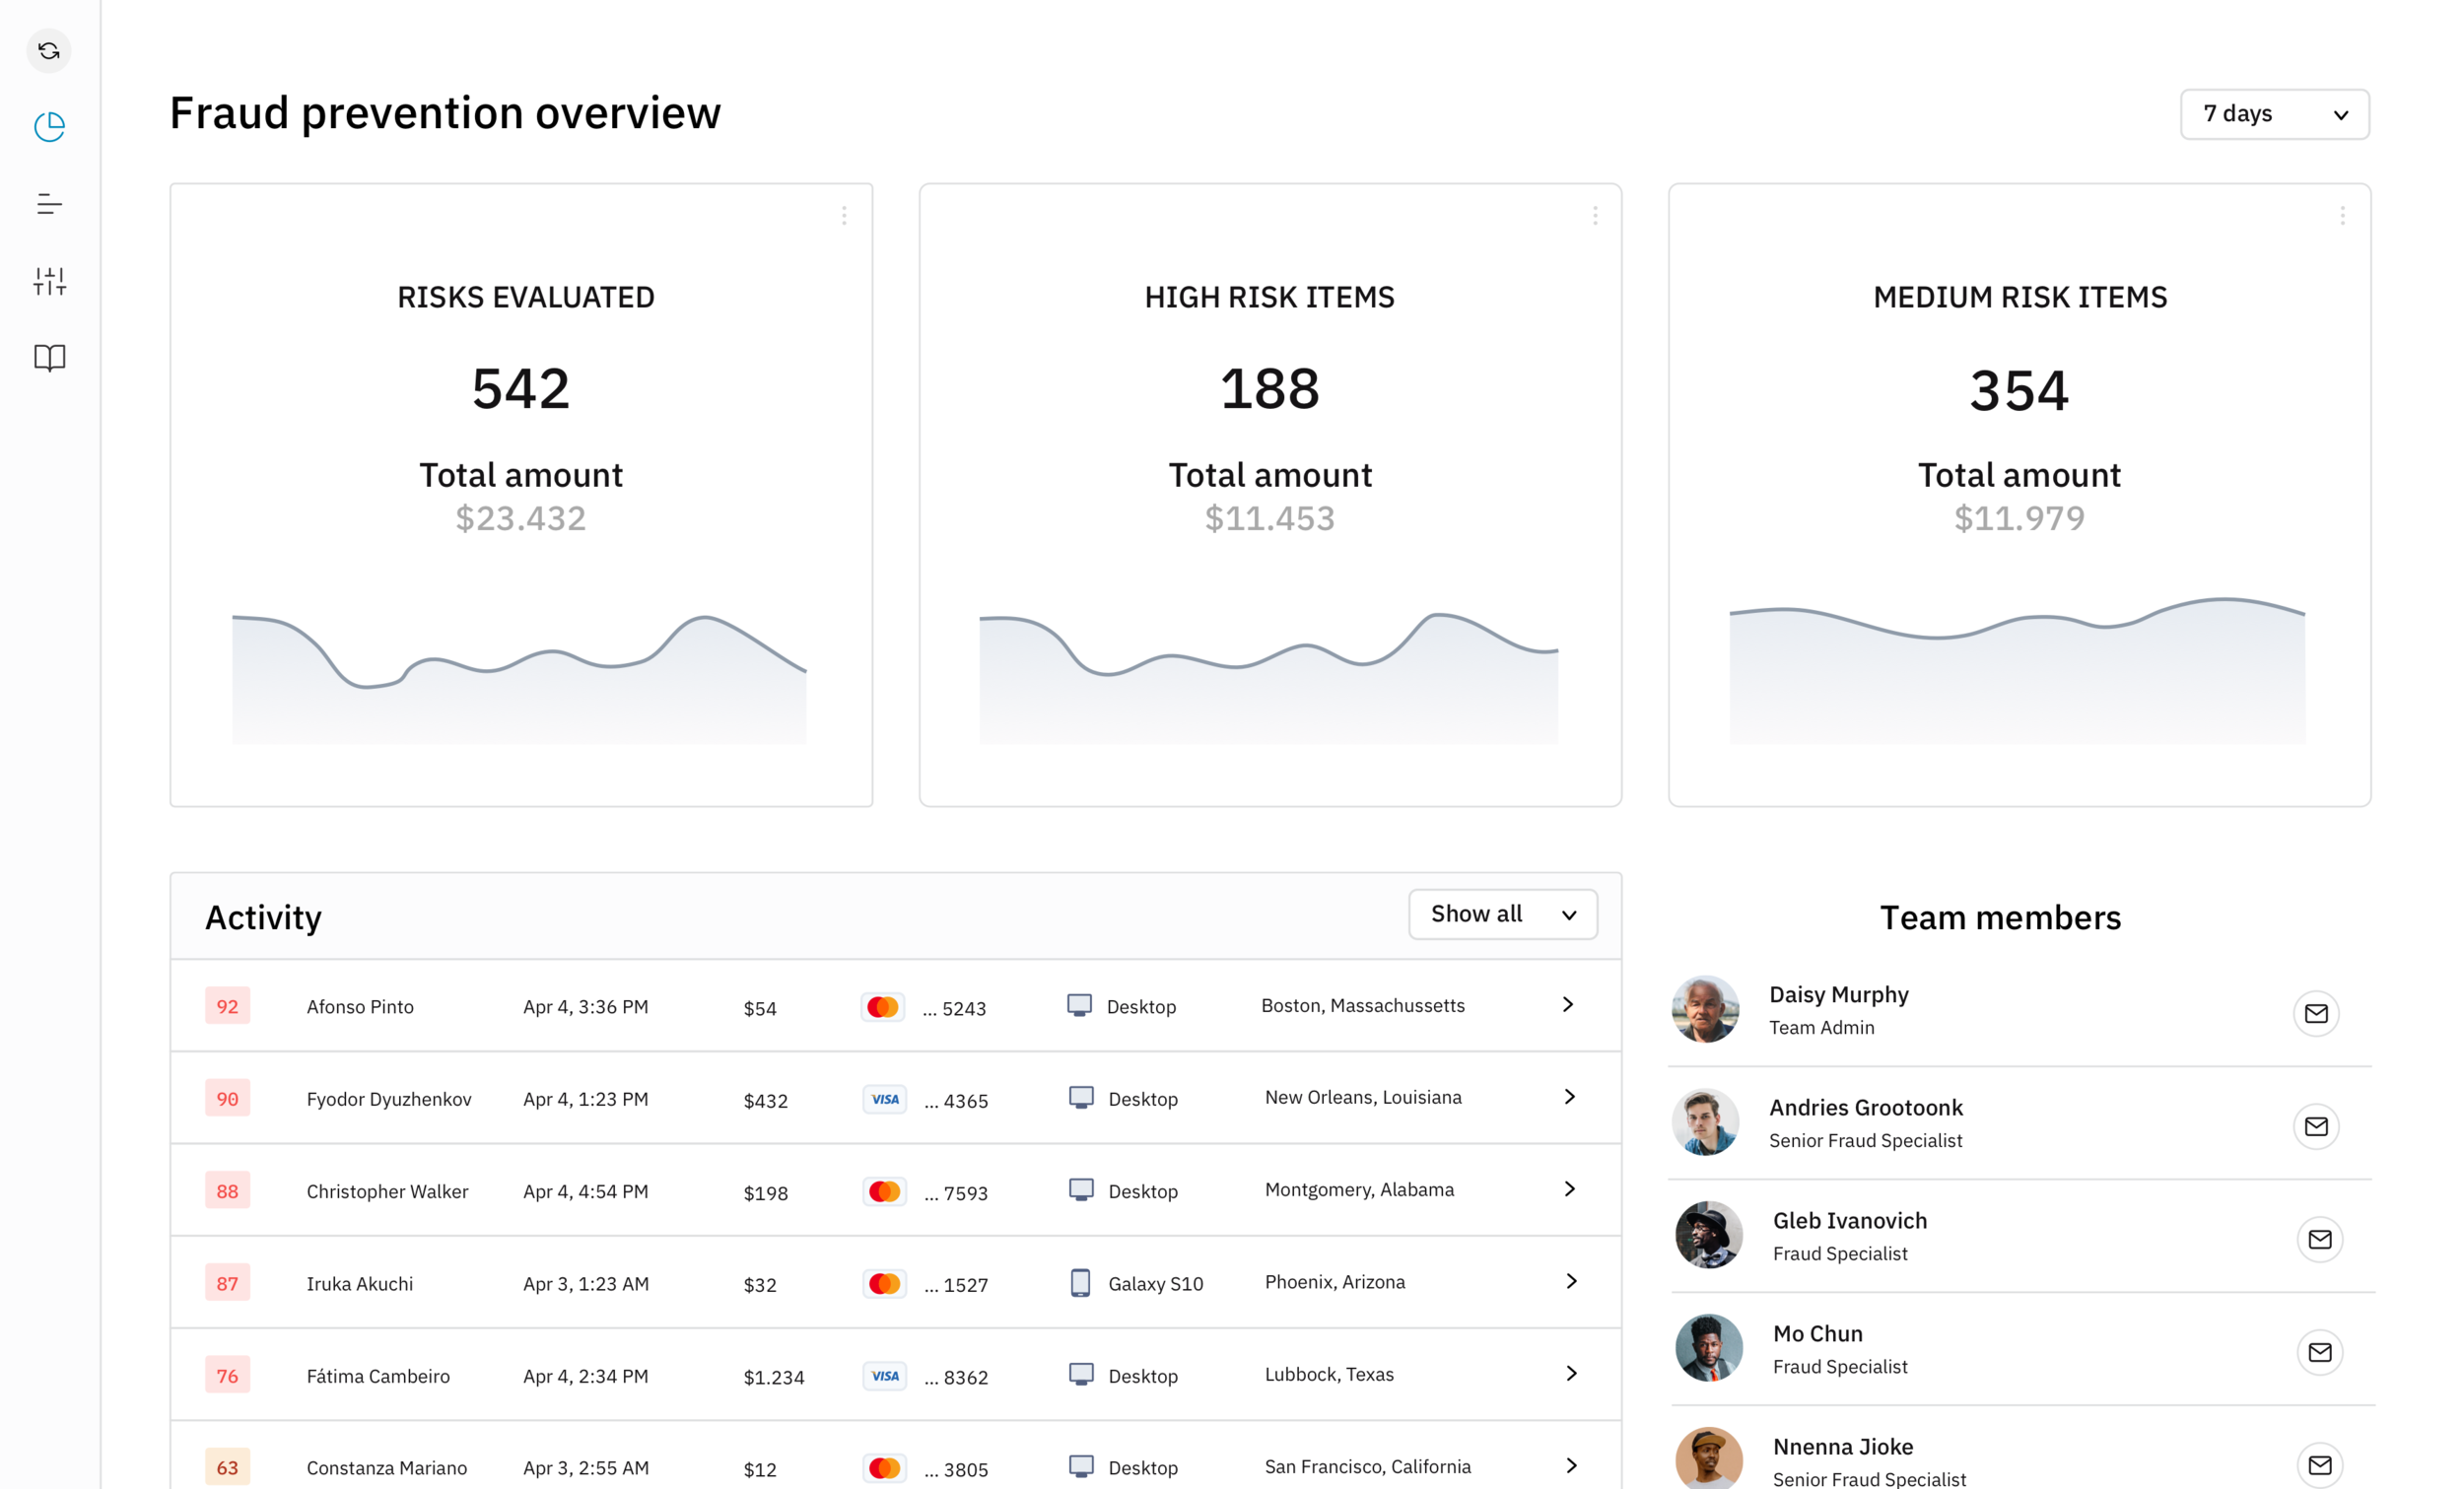 The dashboard view serves as an overview of the employee performance and allows him/her to check recent items and reach out to team members.